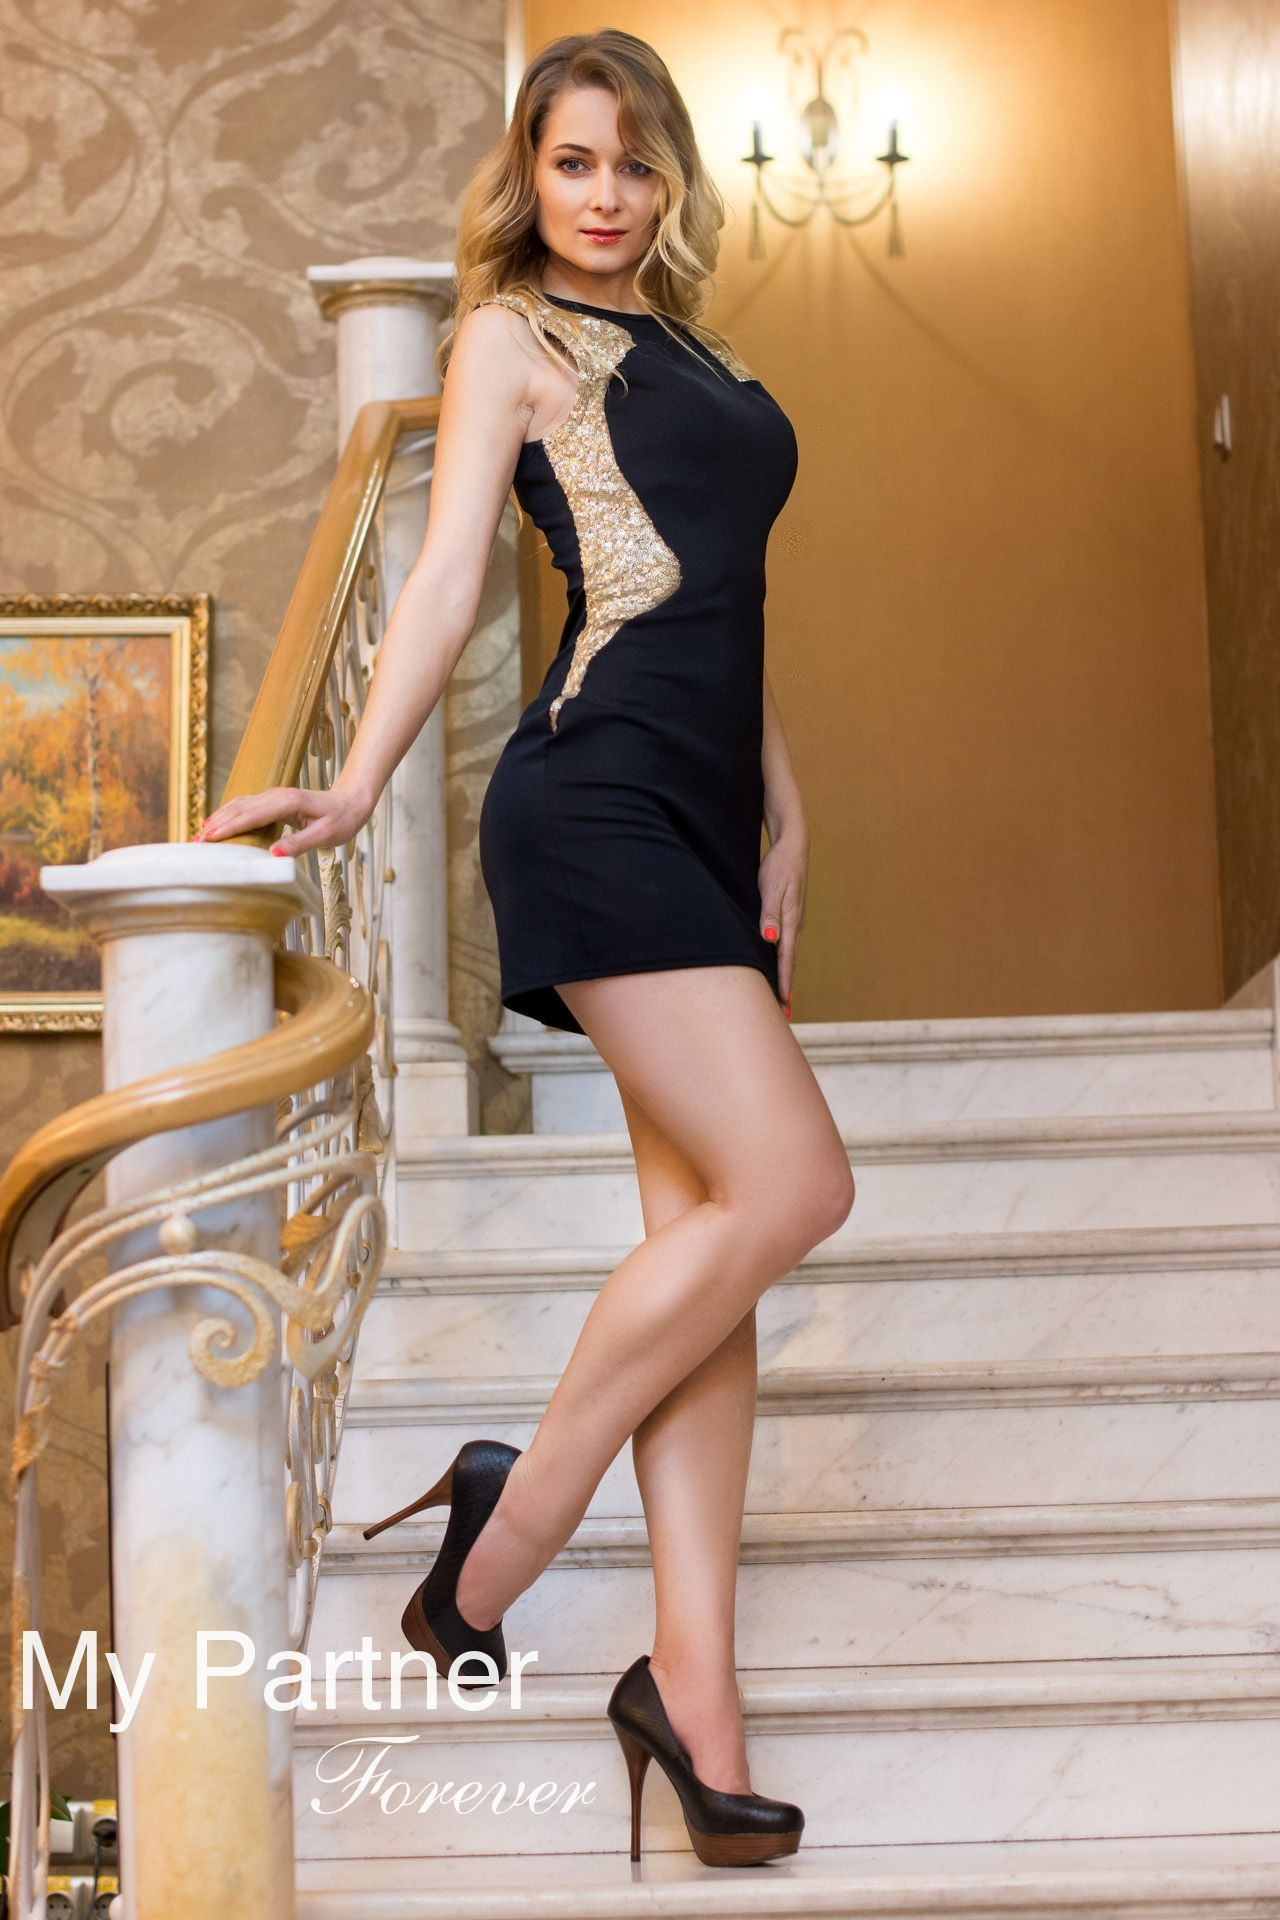 Dating with Pretty Ukrainian Girl Elena from Dniepropetrovsk, Ukraine